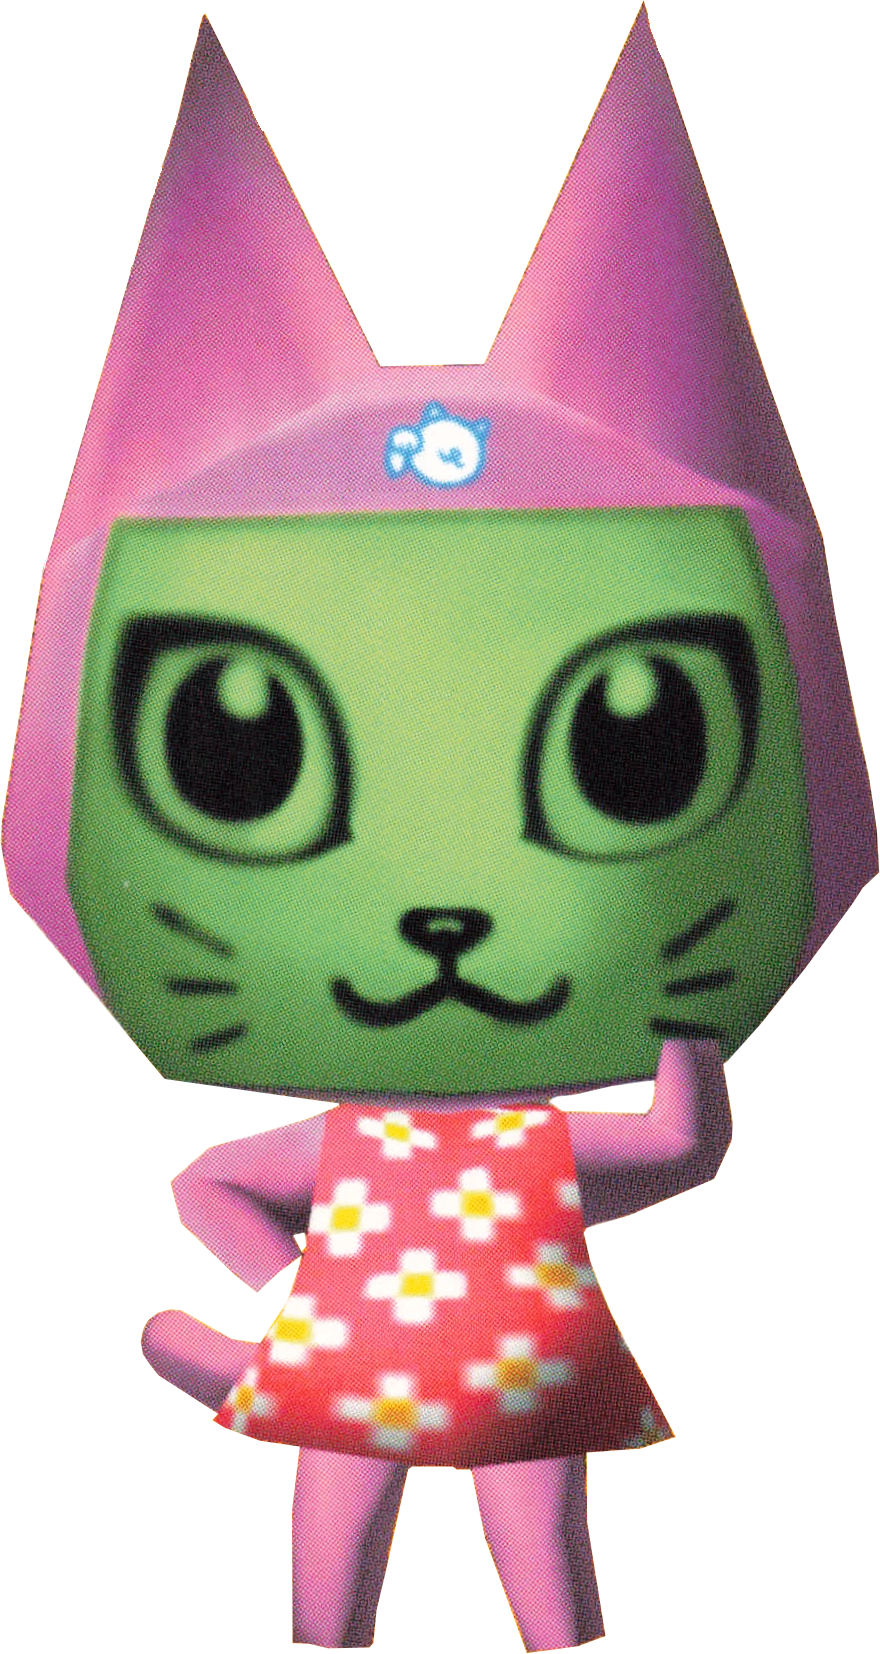 Meow, an Animal Crossing villager.